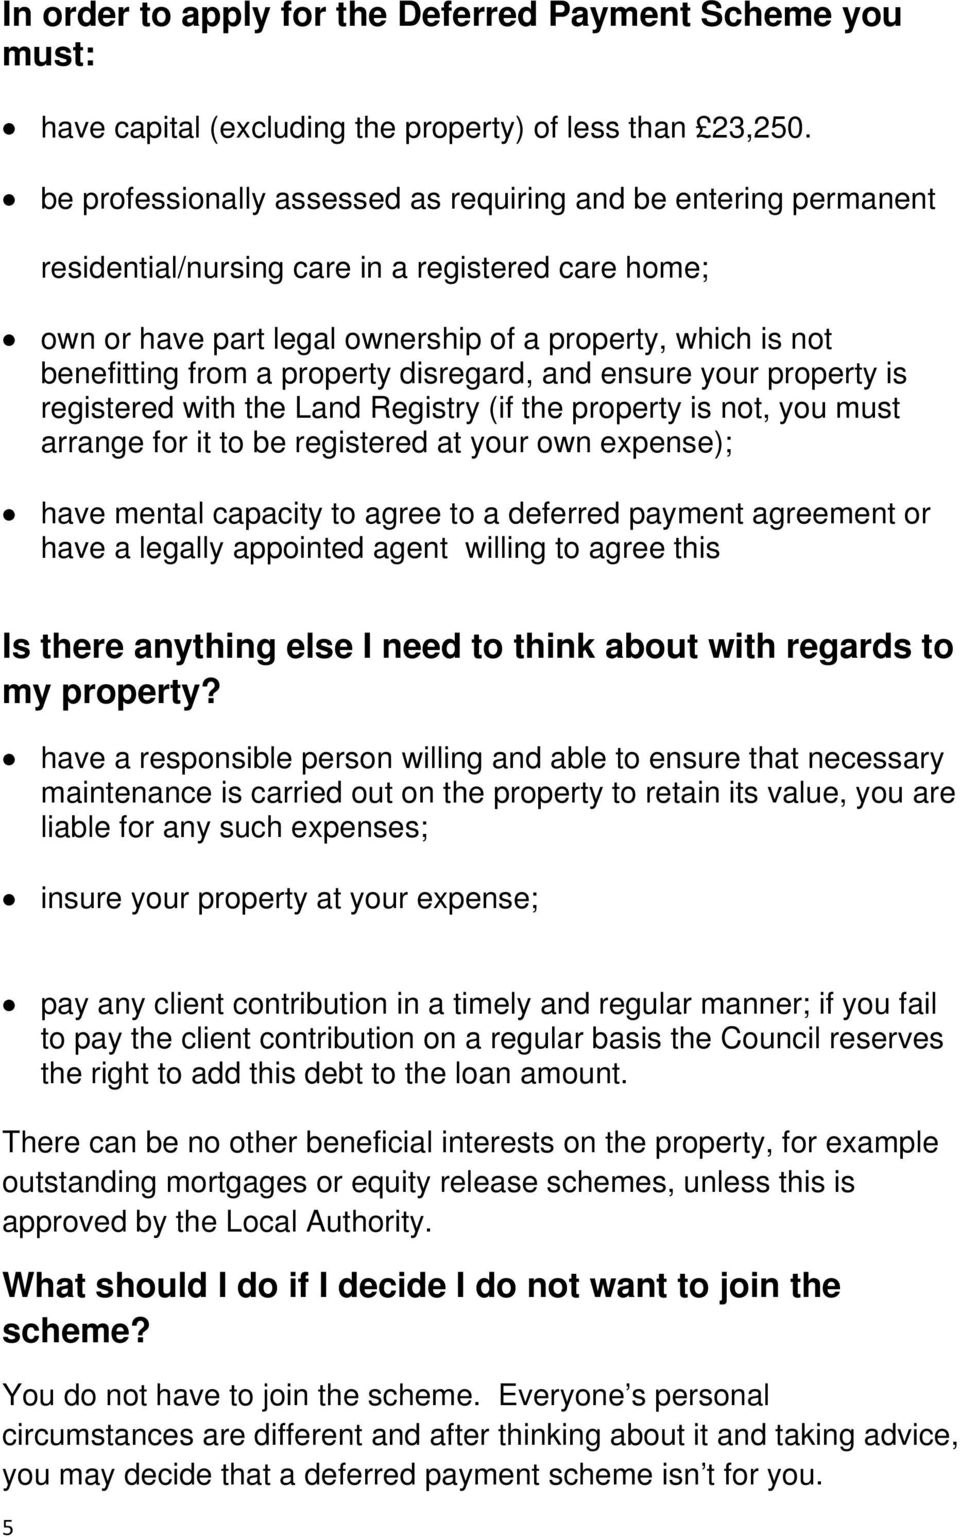 property disregard, and ensure your property is registered with the Land Registry (if the property is not, you must arrange for it to be registered at your own expense); have mental capacity to agree